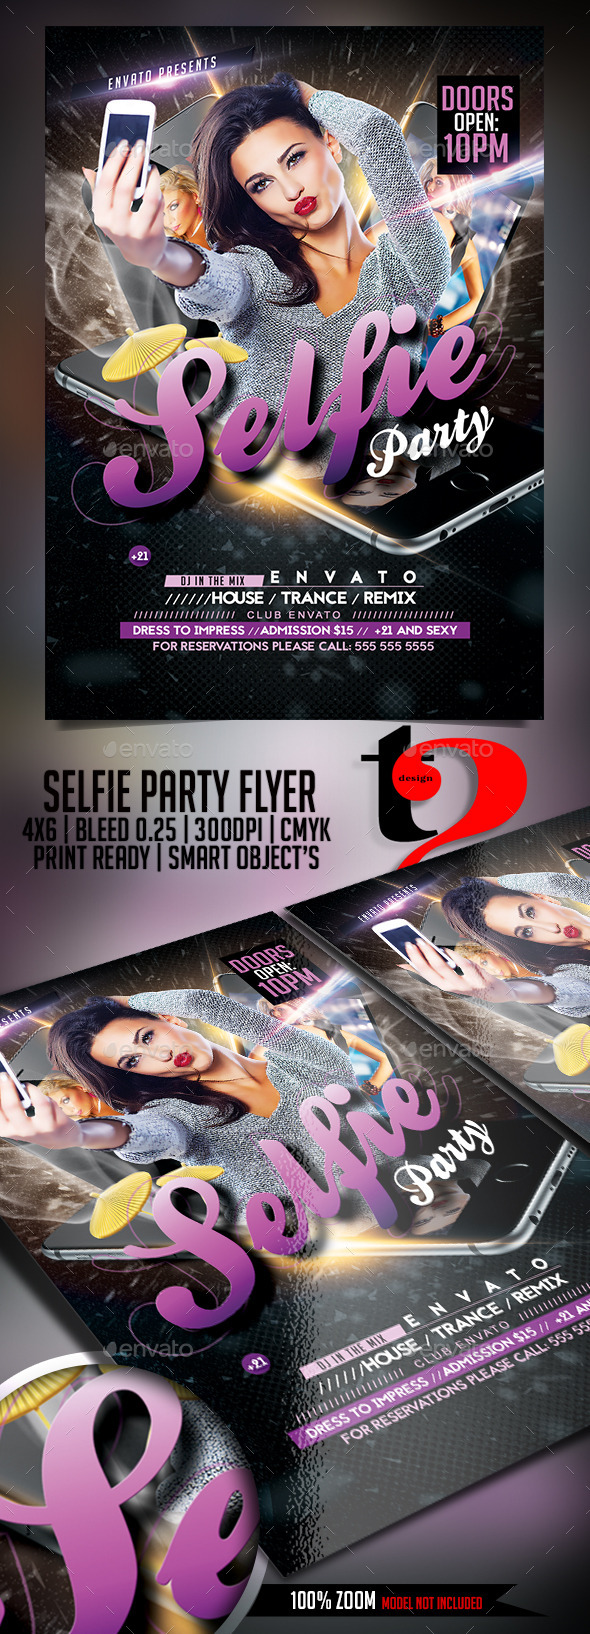 Selfie Party Flyer Template